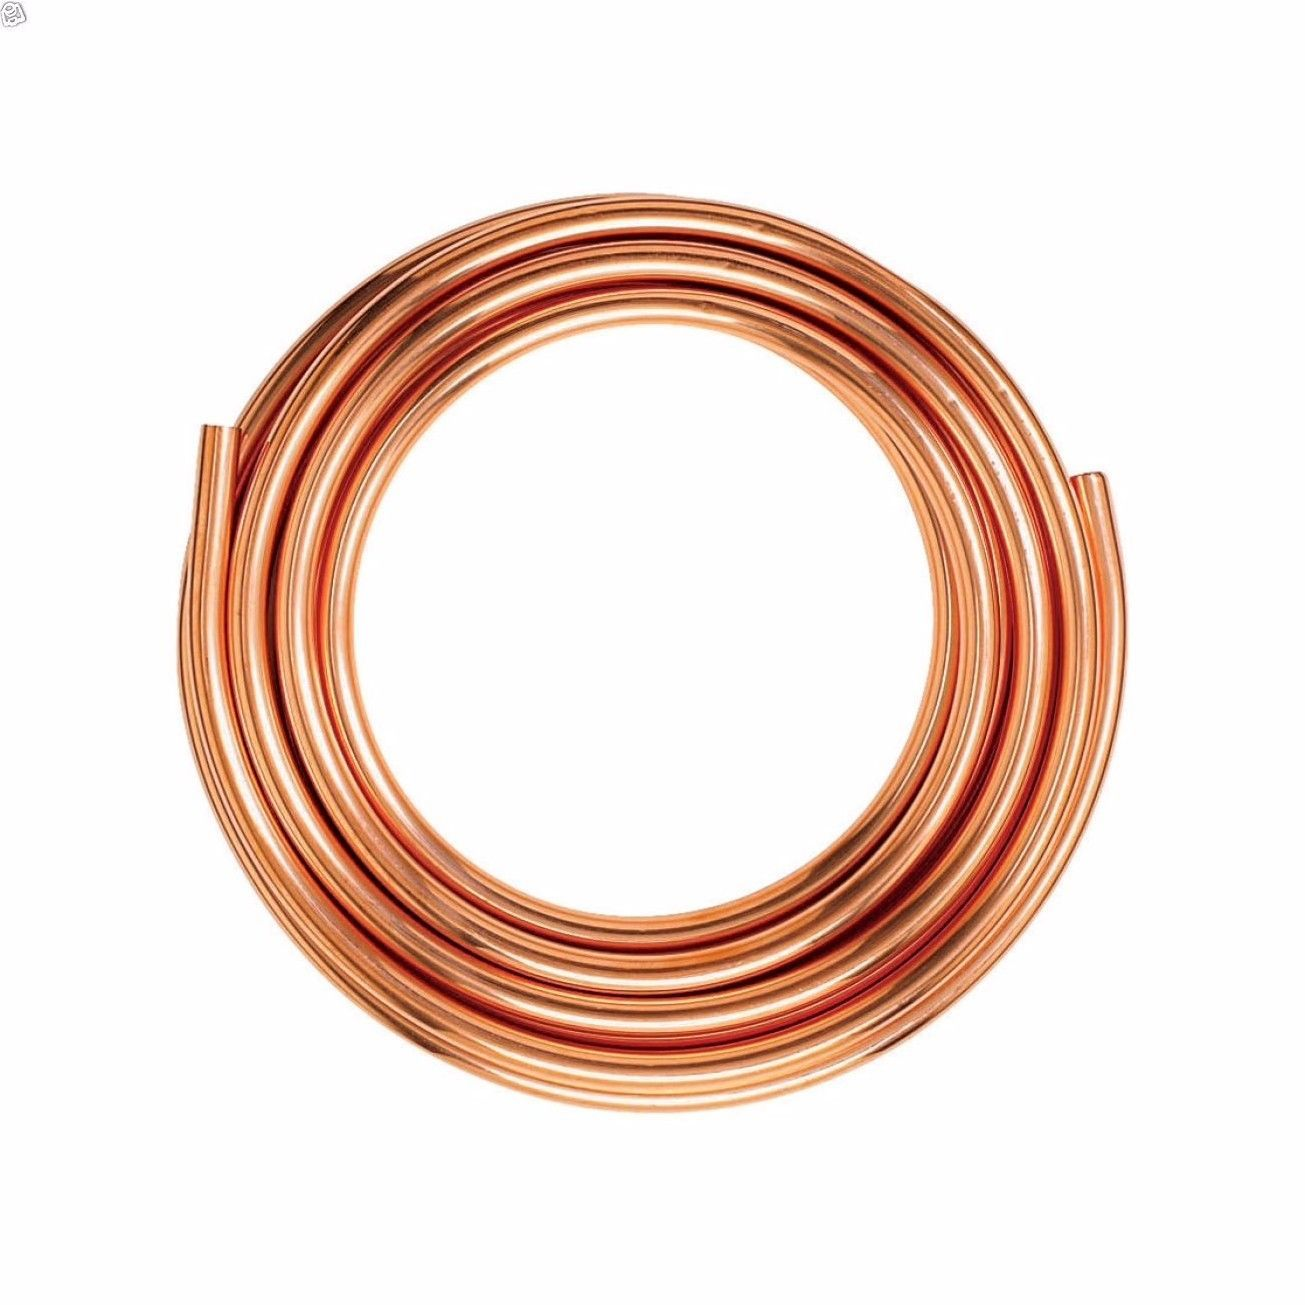 8 99 Any Size Copper Tube 1 4 2 Inch Diameter X 1 Foot Or More Type K Soft Coil Ebay Home Garden Copper Tubing Copper Tube